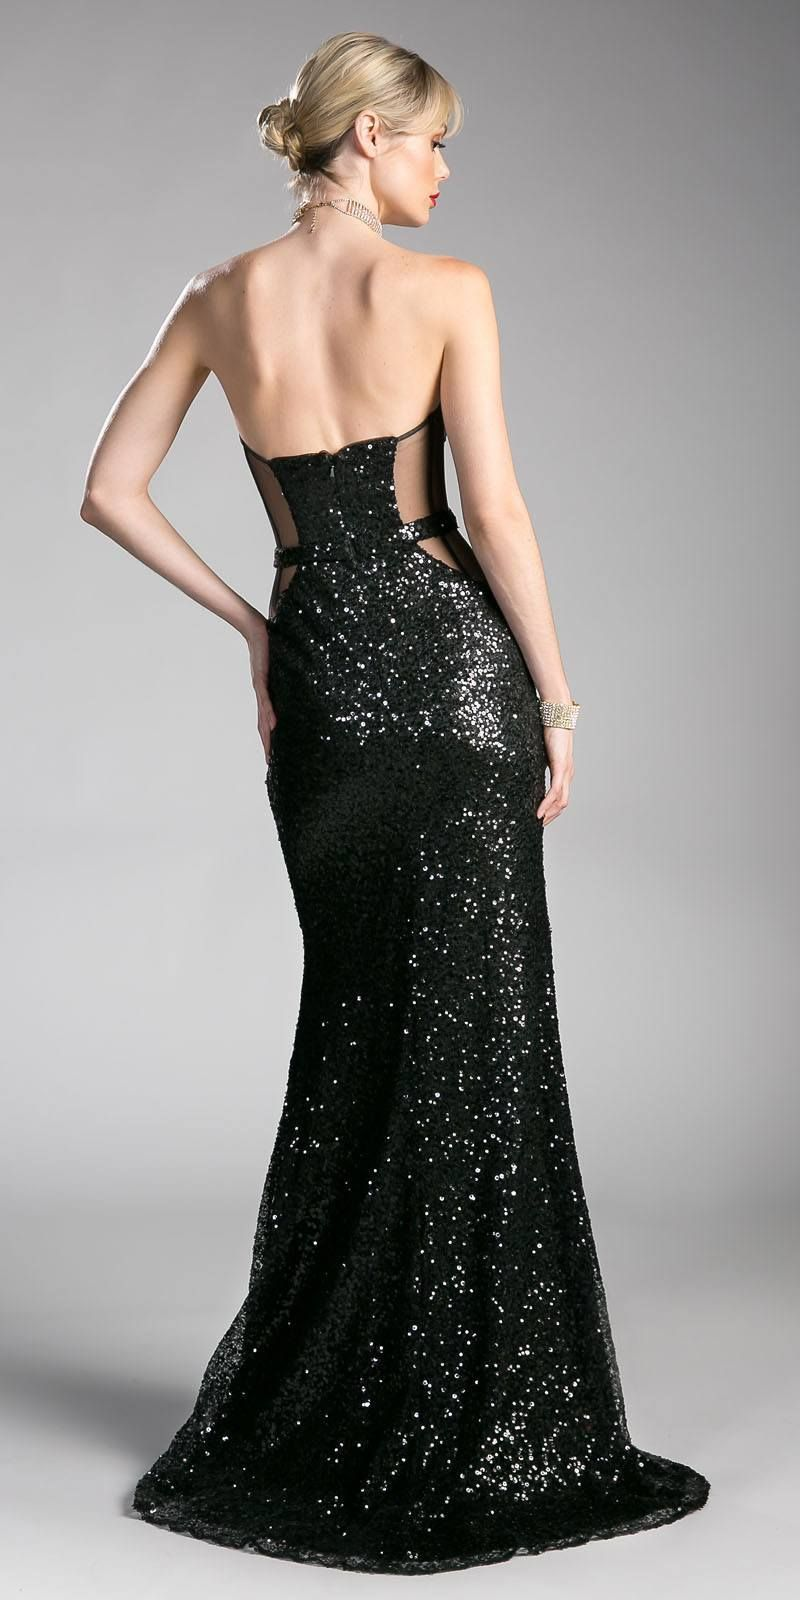 10ea37c1f44dd Sequins Black Strapless Evening Gown Sweetheart Neckline with Slit ...